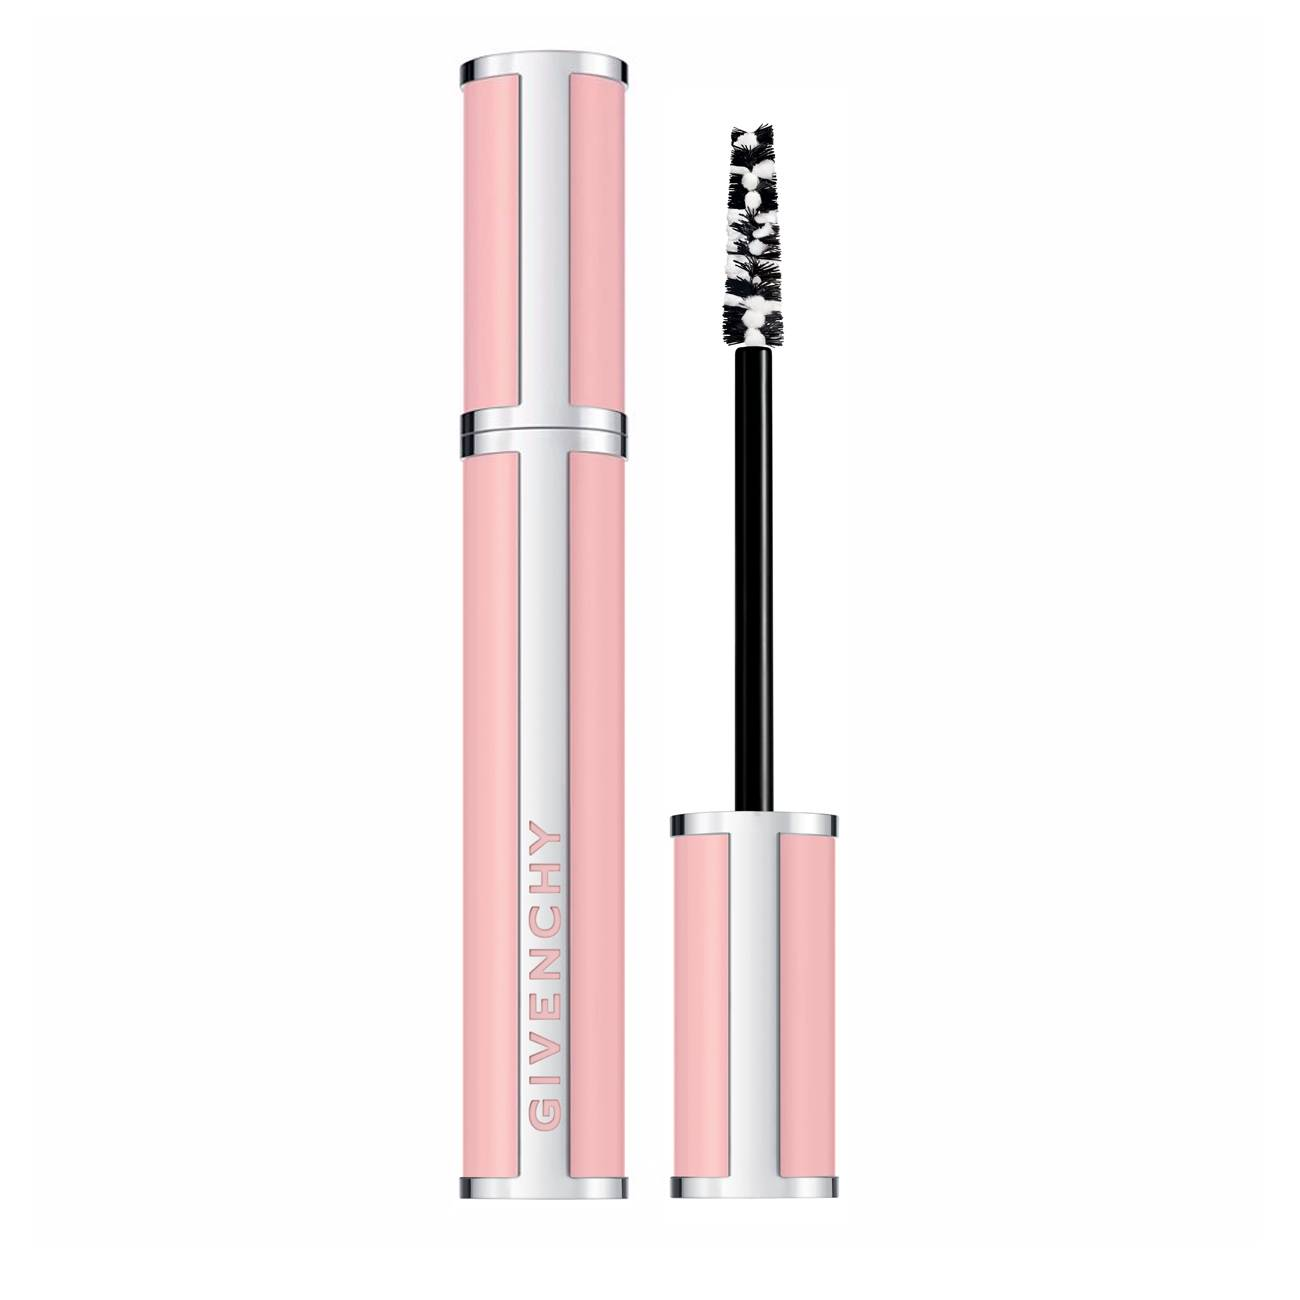 BASE COCOON MASCARA 8 Ml imagine produs